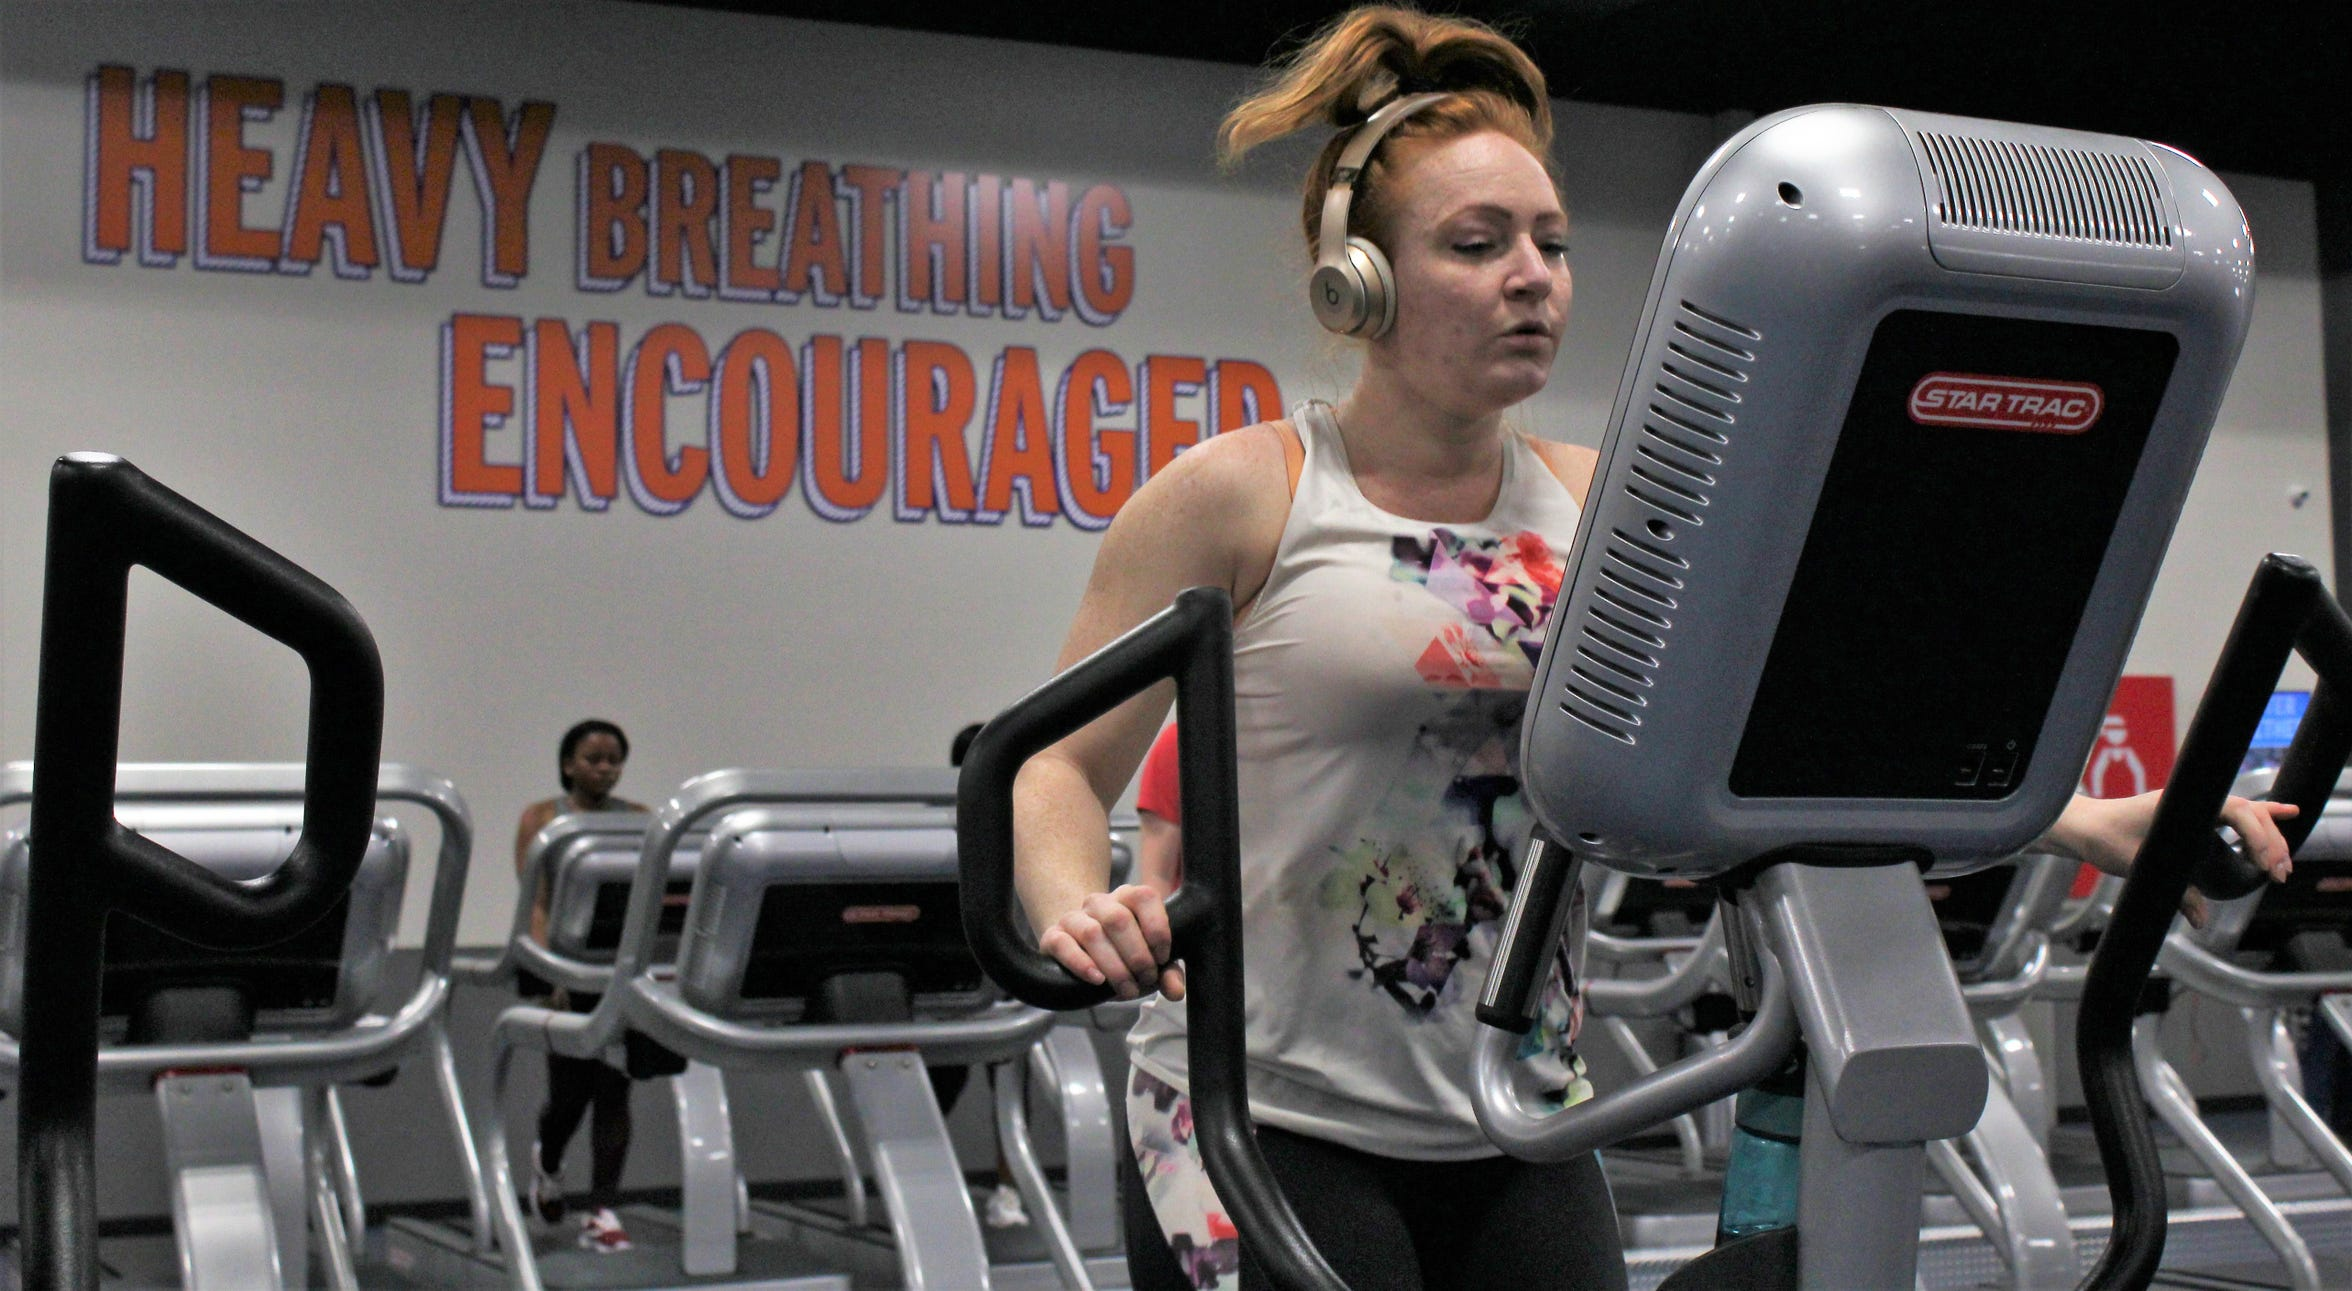 Rebecca Lee works out Friday afternoon on an elliptical-type machine at the new Crunch Fitness. She previously trained at a Crunch Fitness in another city and welcomed the chance to return.